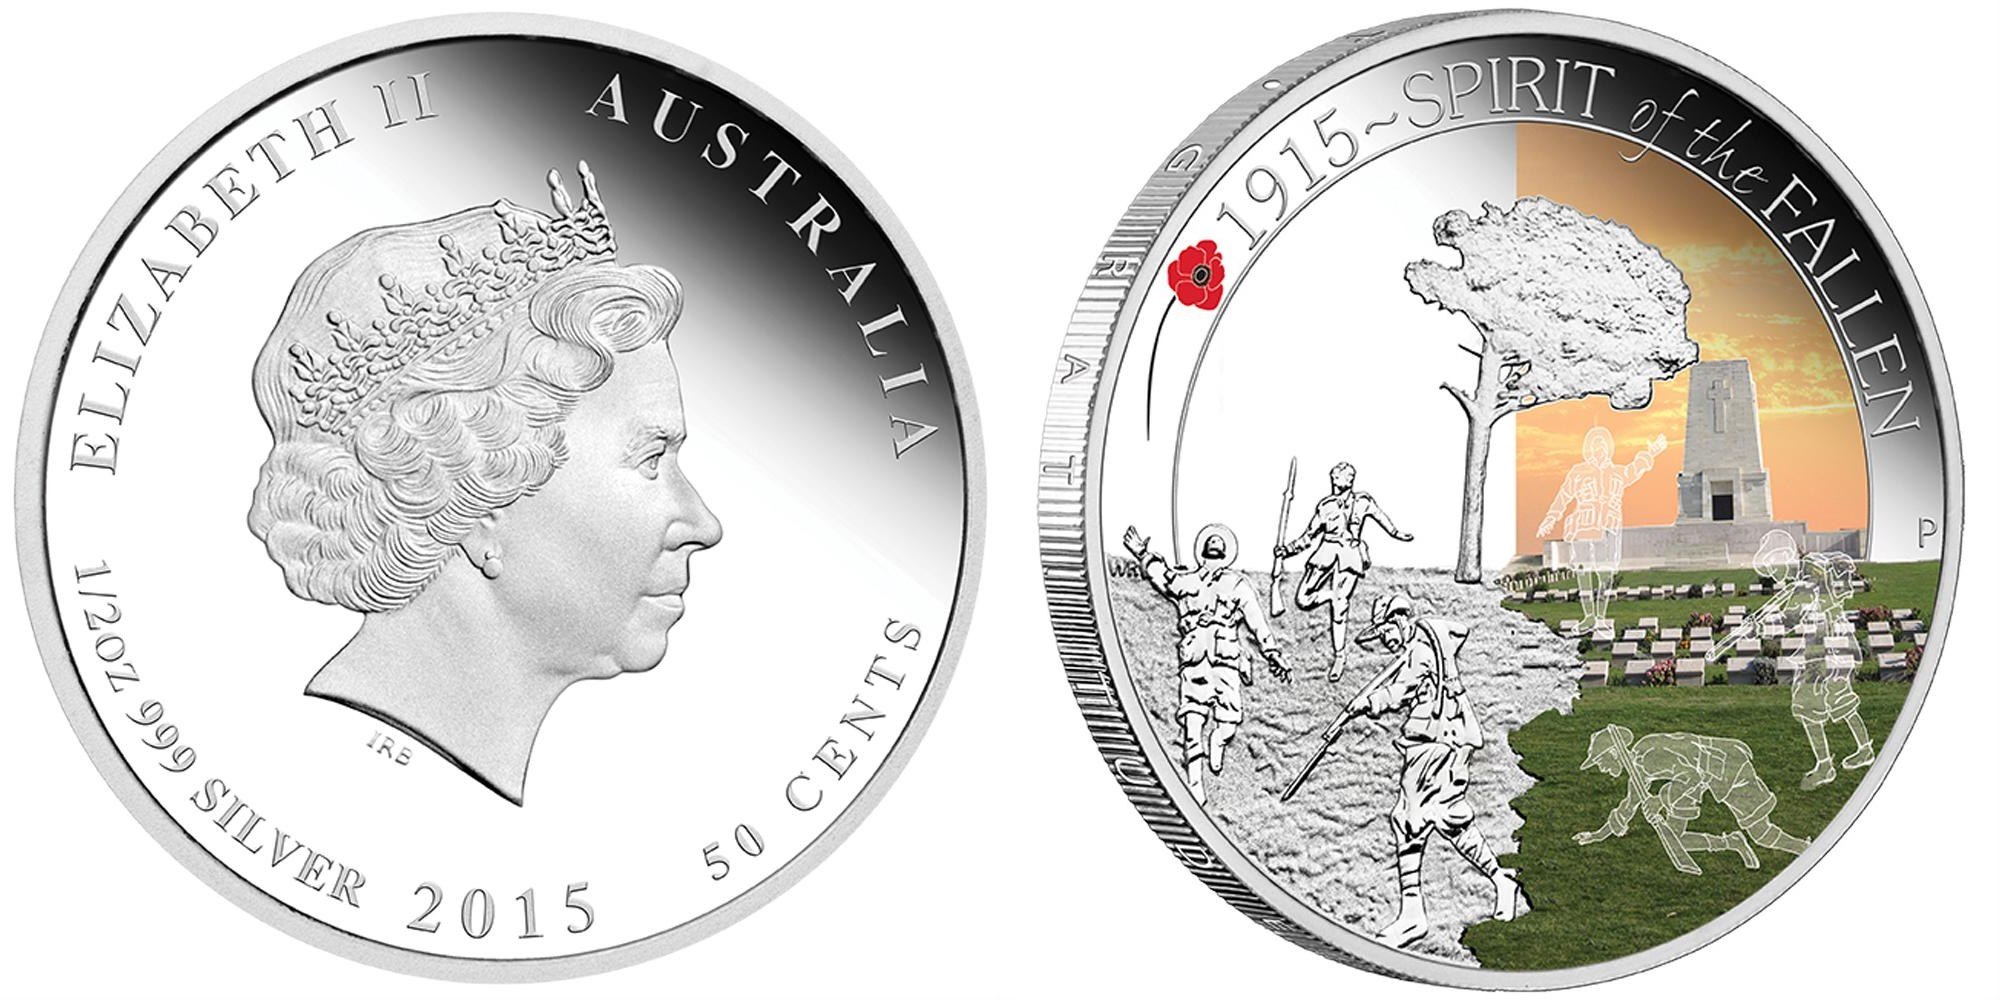 australie 2015 anzac spirit - spirit of the fallen.jpg